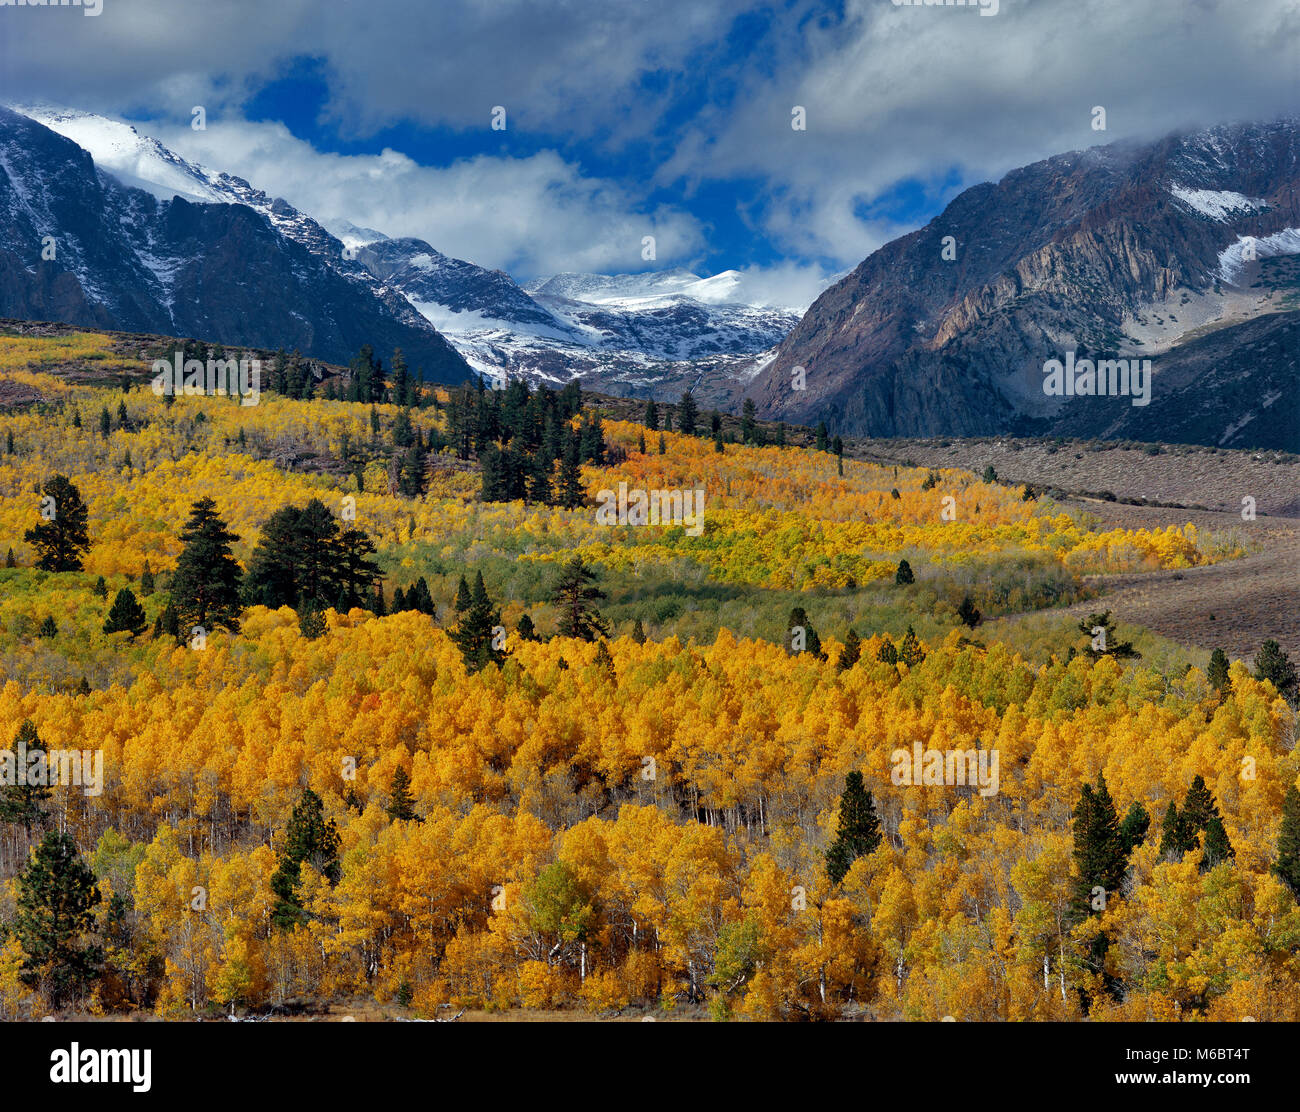 Clearing Storm, Aspens, Parker Peak, Ansel Adams Wilderness, Inyo National Forest, Eastern Sierra, California - Stock Image